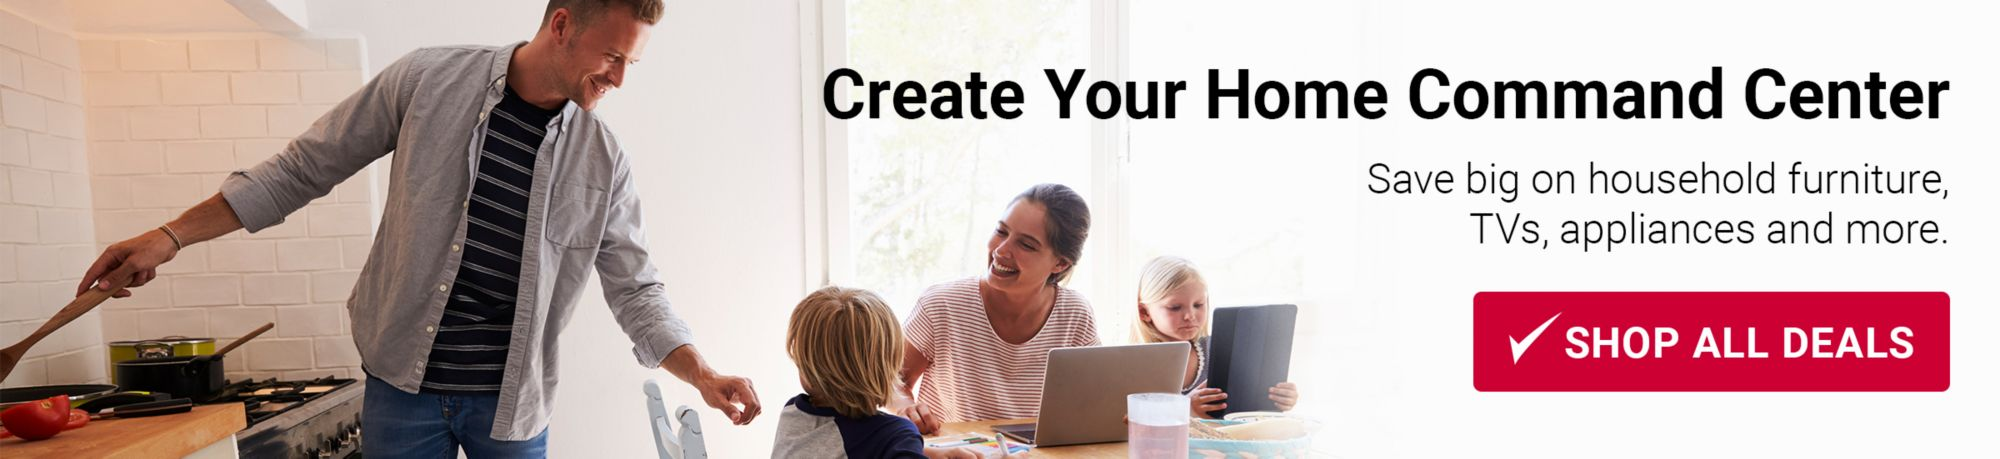 Create Your Home Command Center. Save big on household furniture, TVs, appliances and more. Click here to shop all deals.